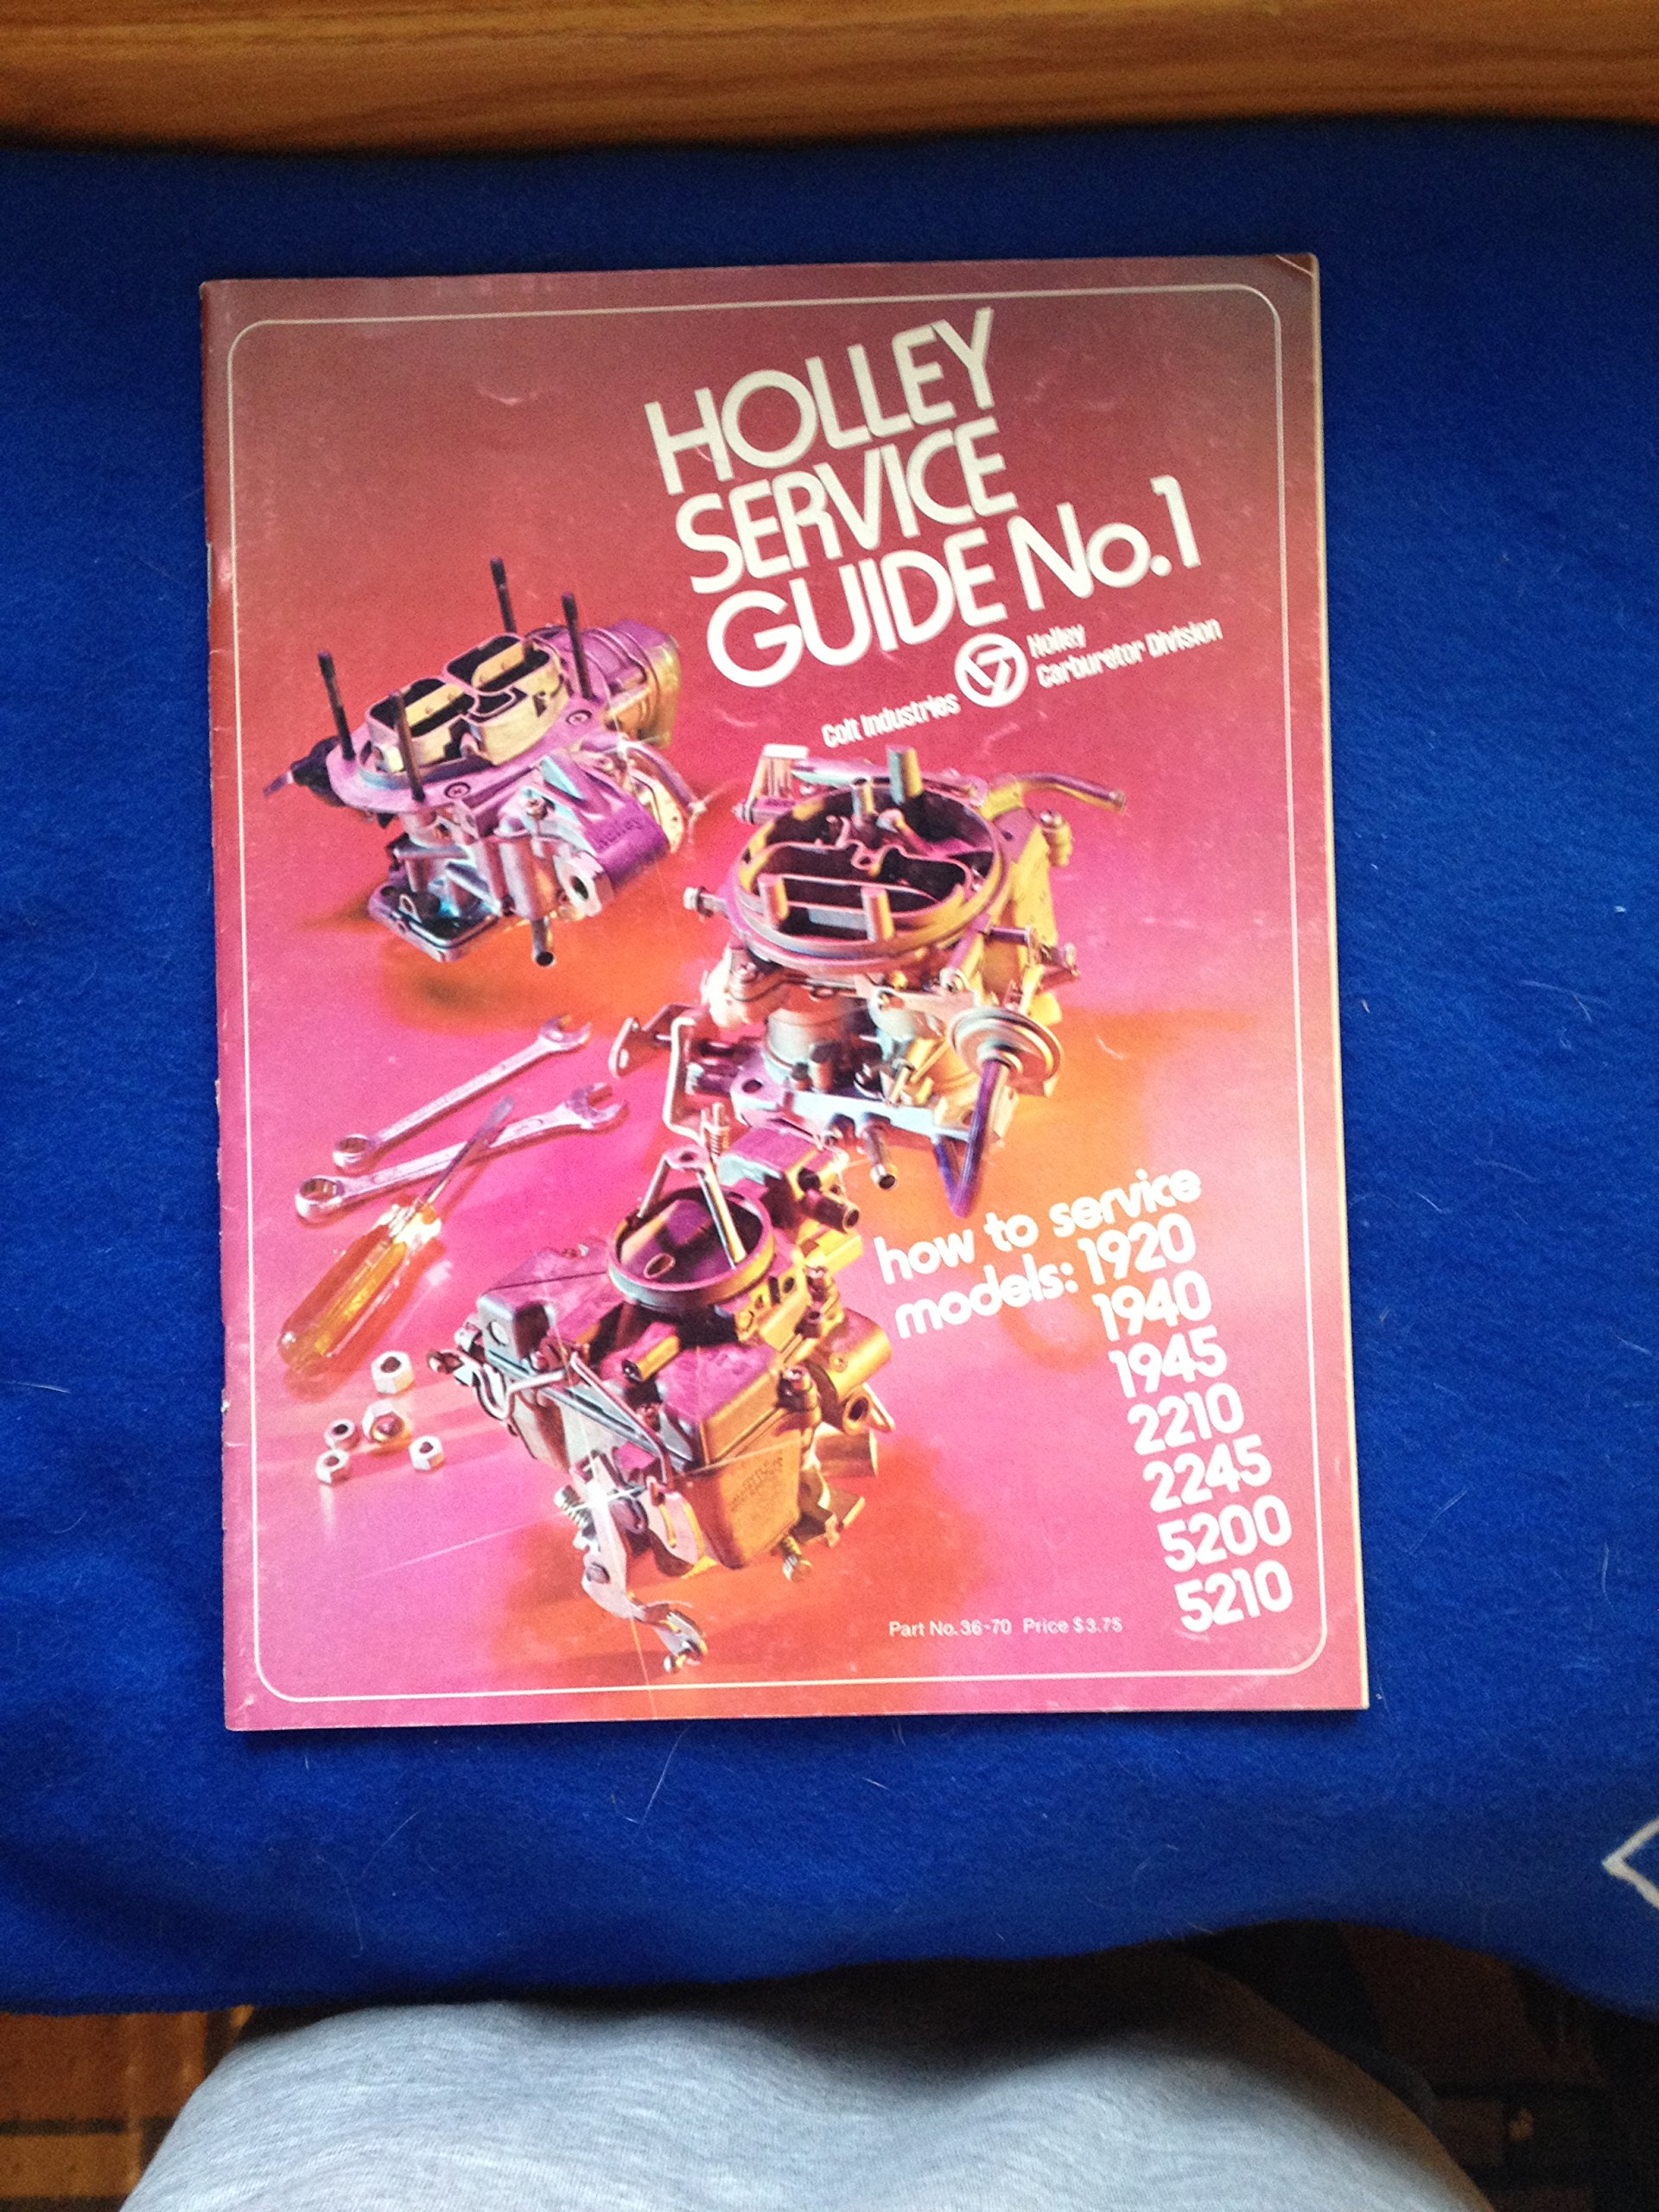 Holley Carburetor Service Guide No  1 covers models: 1920